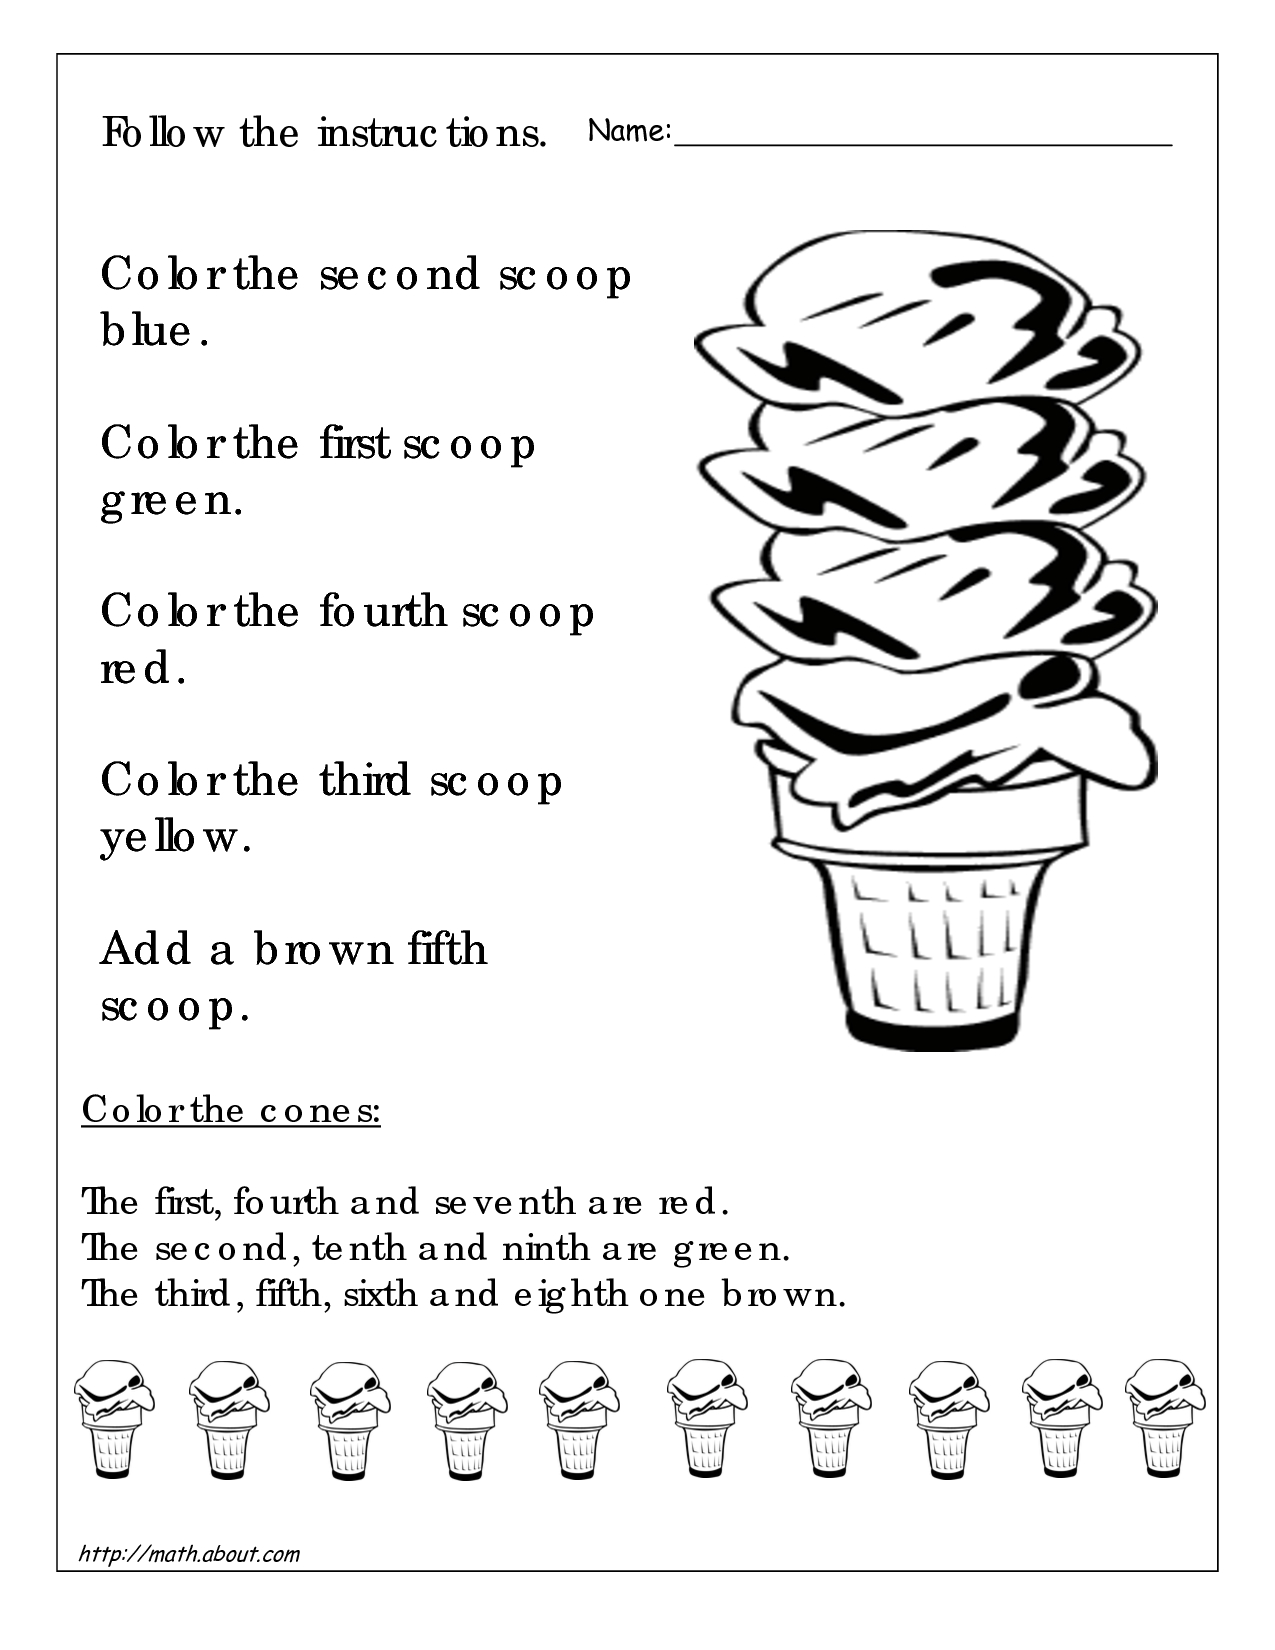 Math Worksheets For 3Rd Graders | 1St Grade Printable Worksheets For - Printable Puzzles For 3Rd Grade